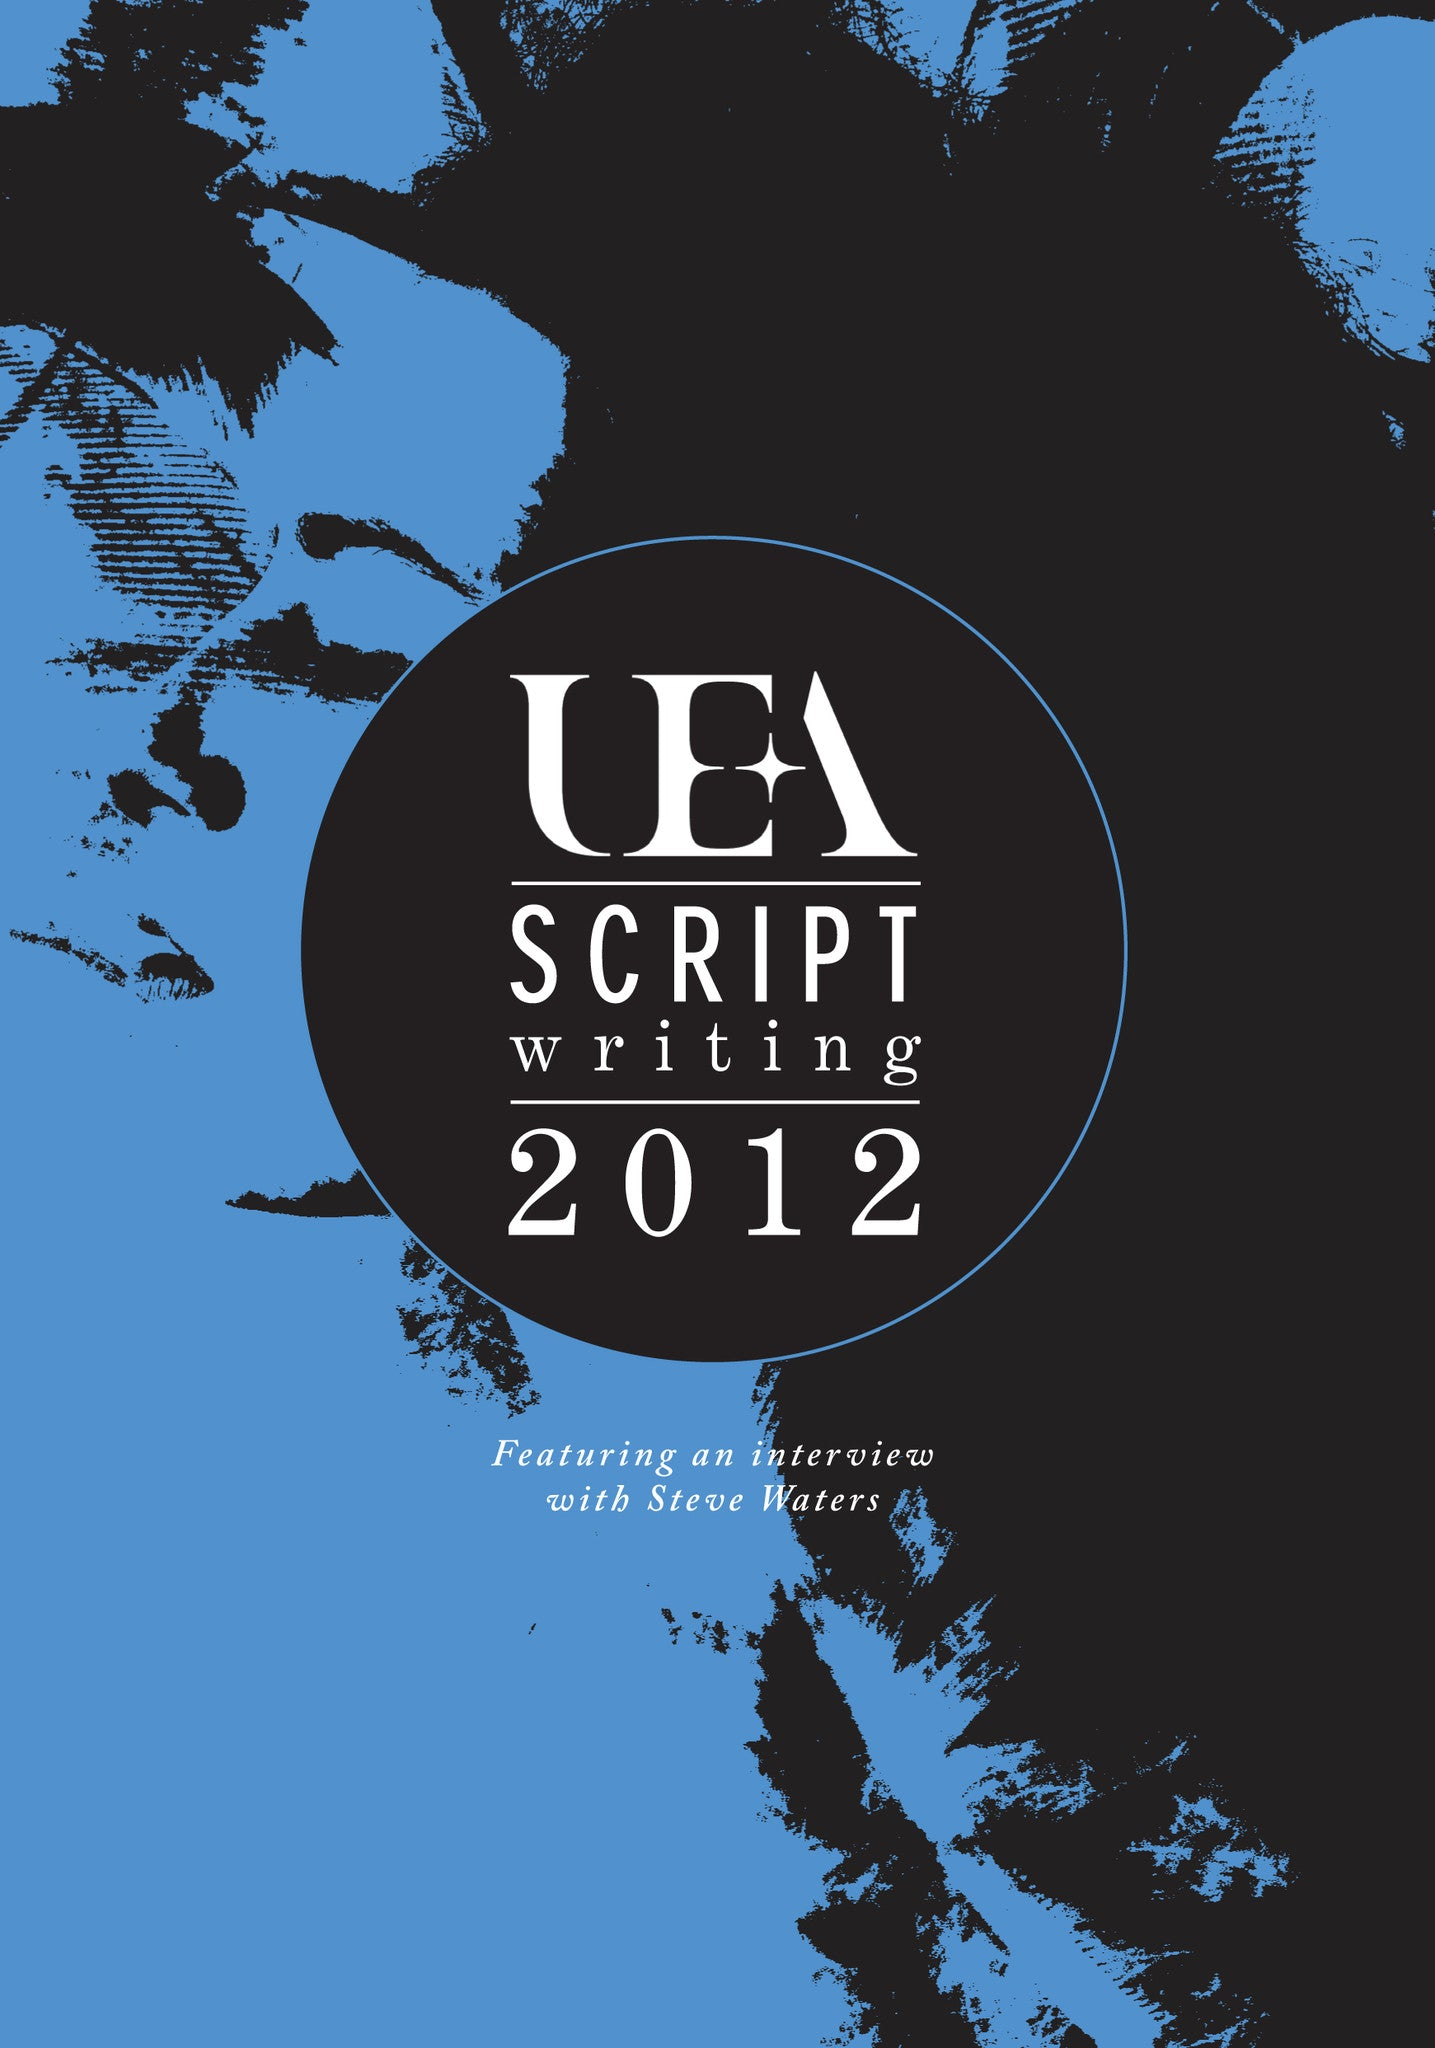 UEA Scriptwriting Anthology 2012